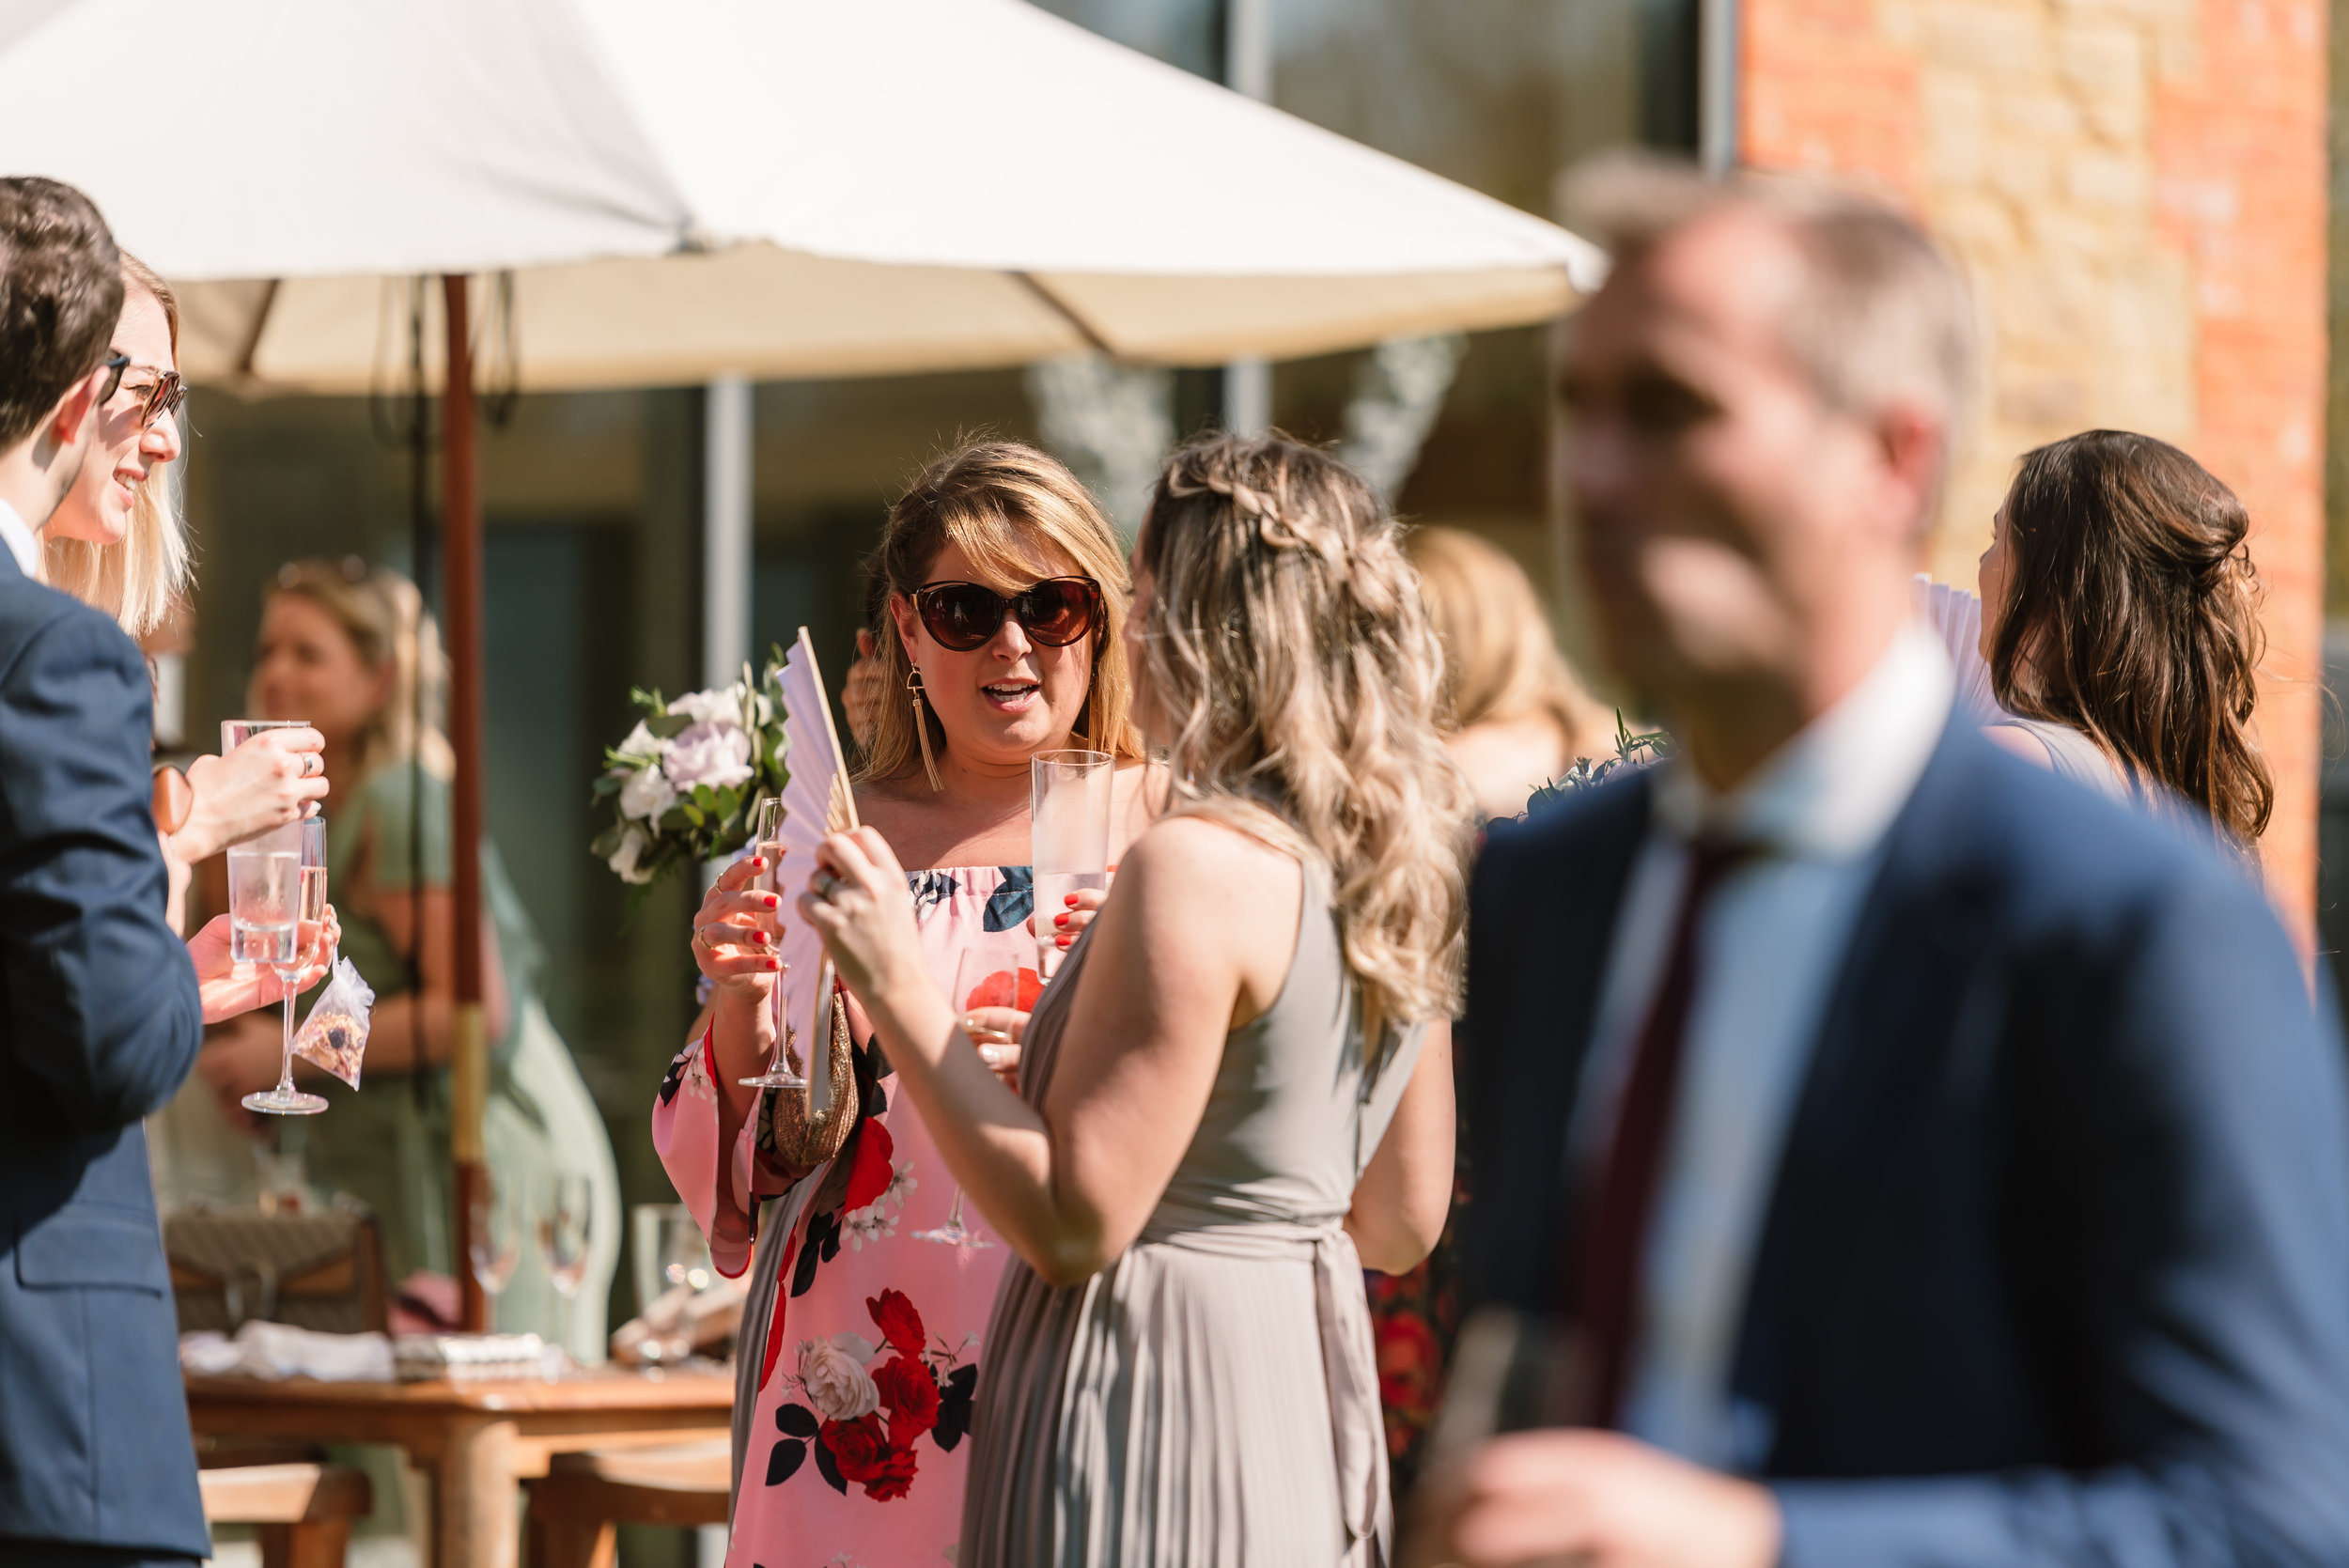 Sarah-Fishlock-Photography : Hampshire-wedding-photographer-hampshire : fleet-wedding-photographer-fleet : Millbridge-Court-Wedding-Photographer : Millbridge-Court-Wedding-Venue : Surrey-wedding-venue-746.jpg